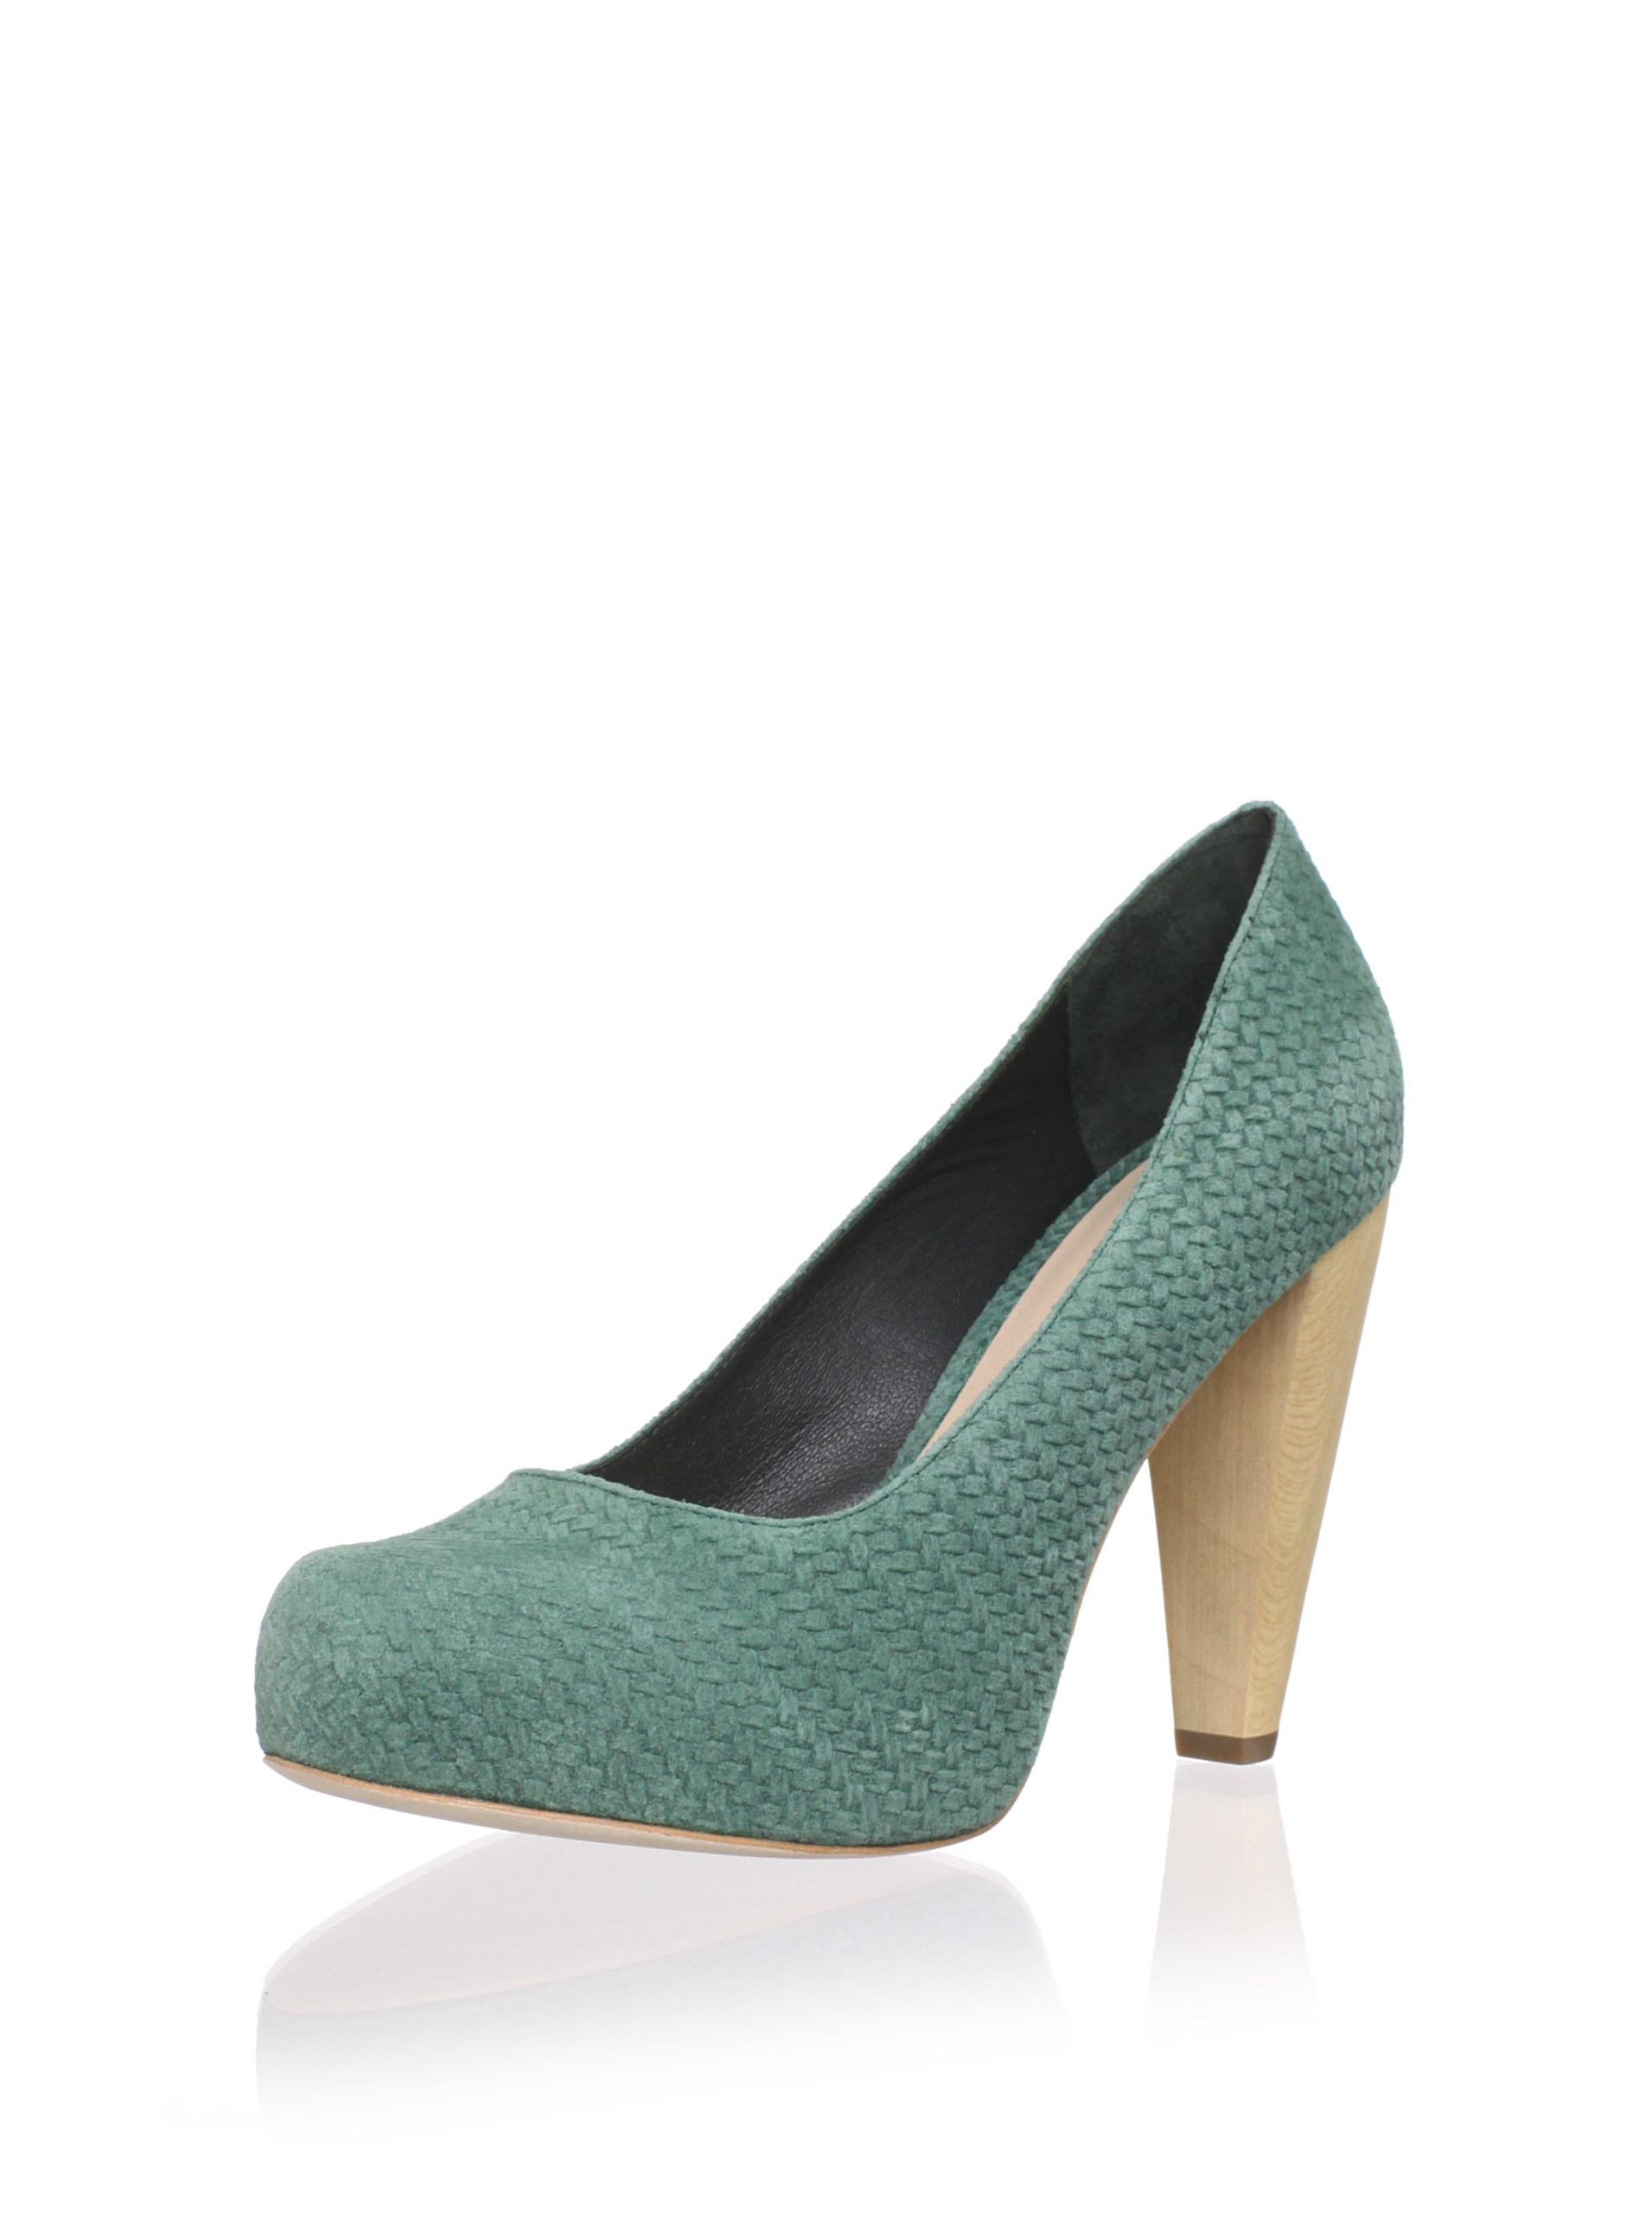 Loeffler Randall Women's Esther Hidden Platform Pump (Bottle Green)